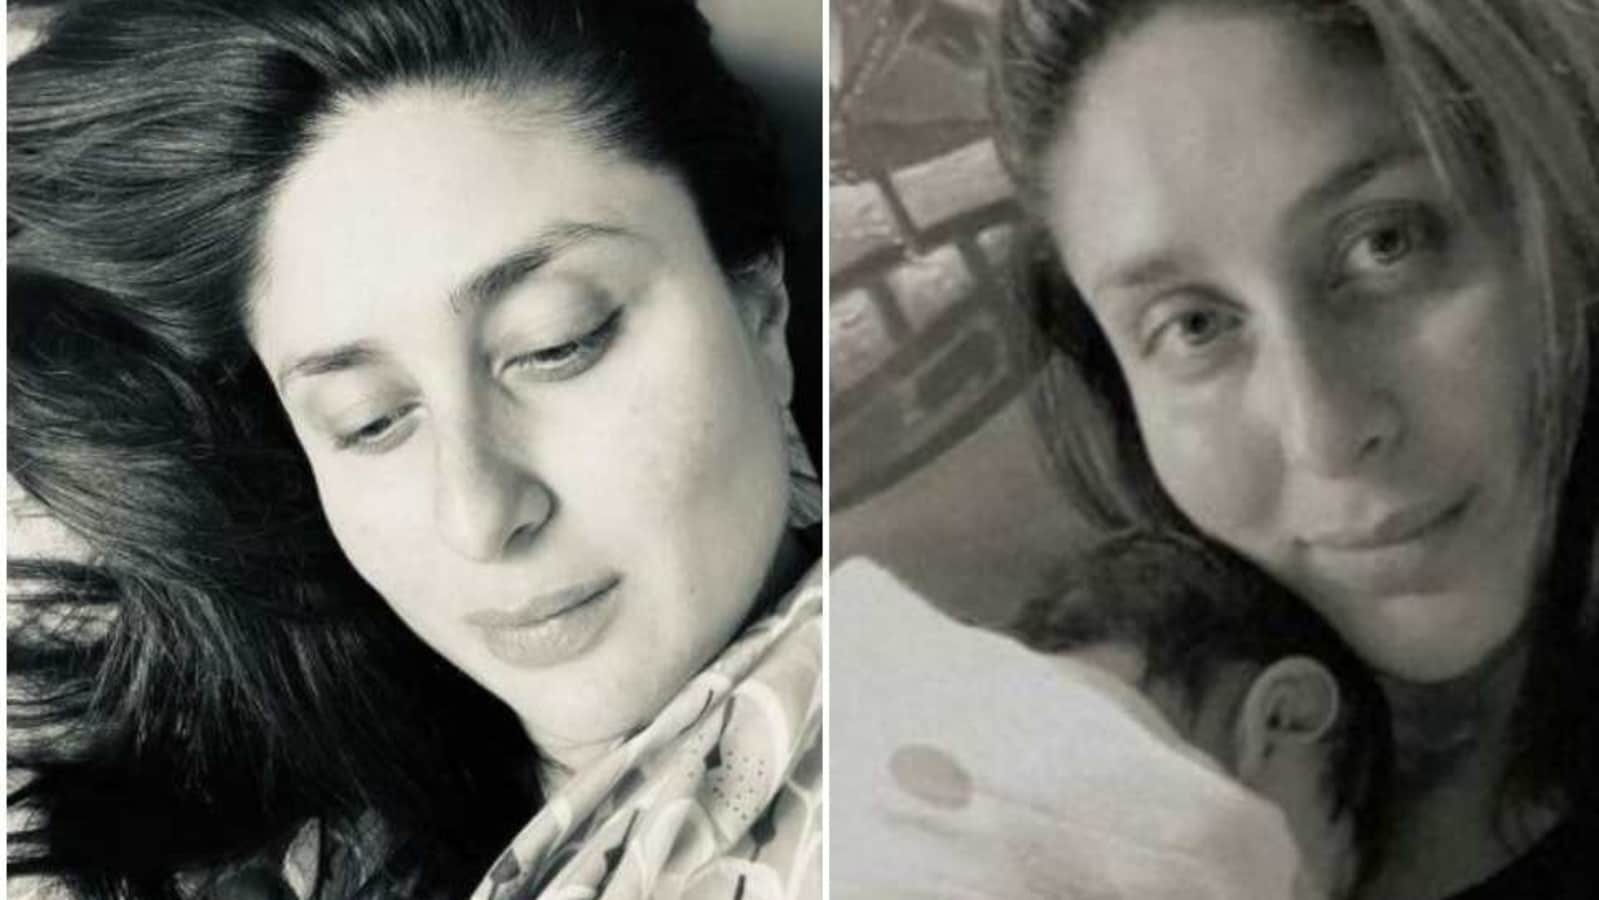 Kareena Kapoor can't stop staring at her newborn baby. Check out her new pic - Hindustan Times